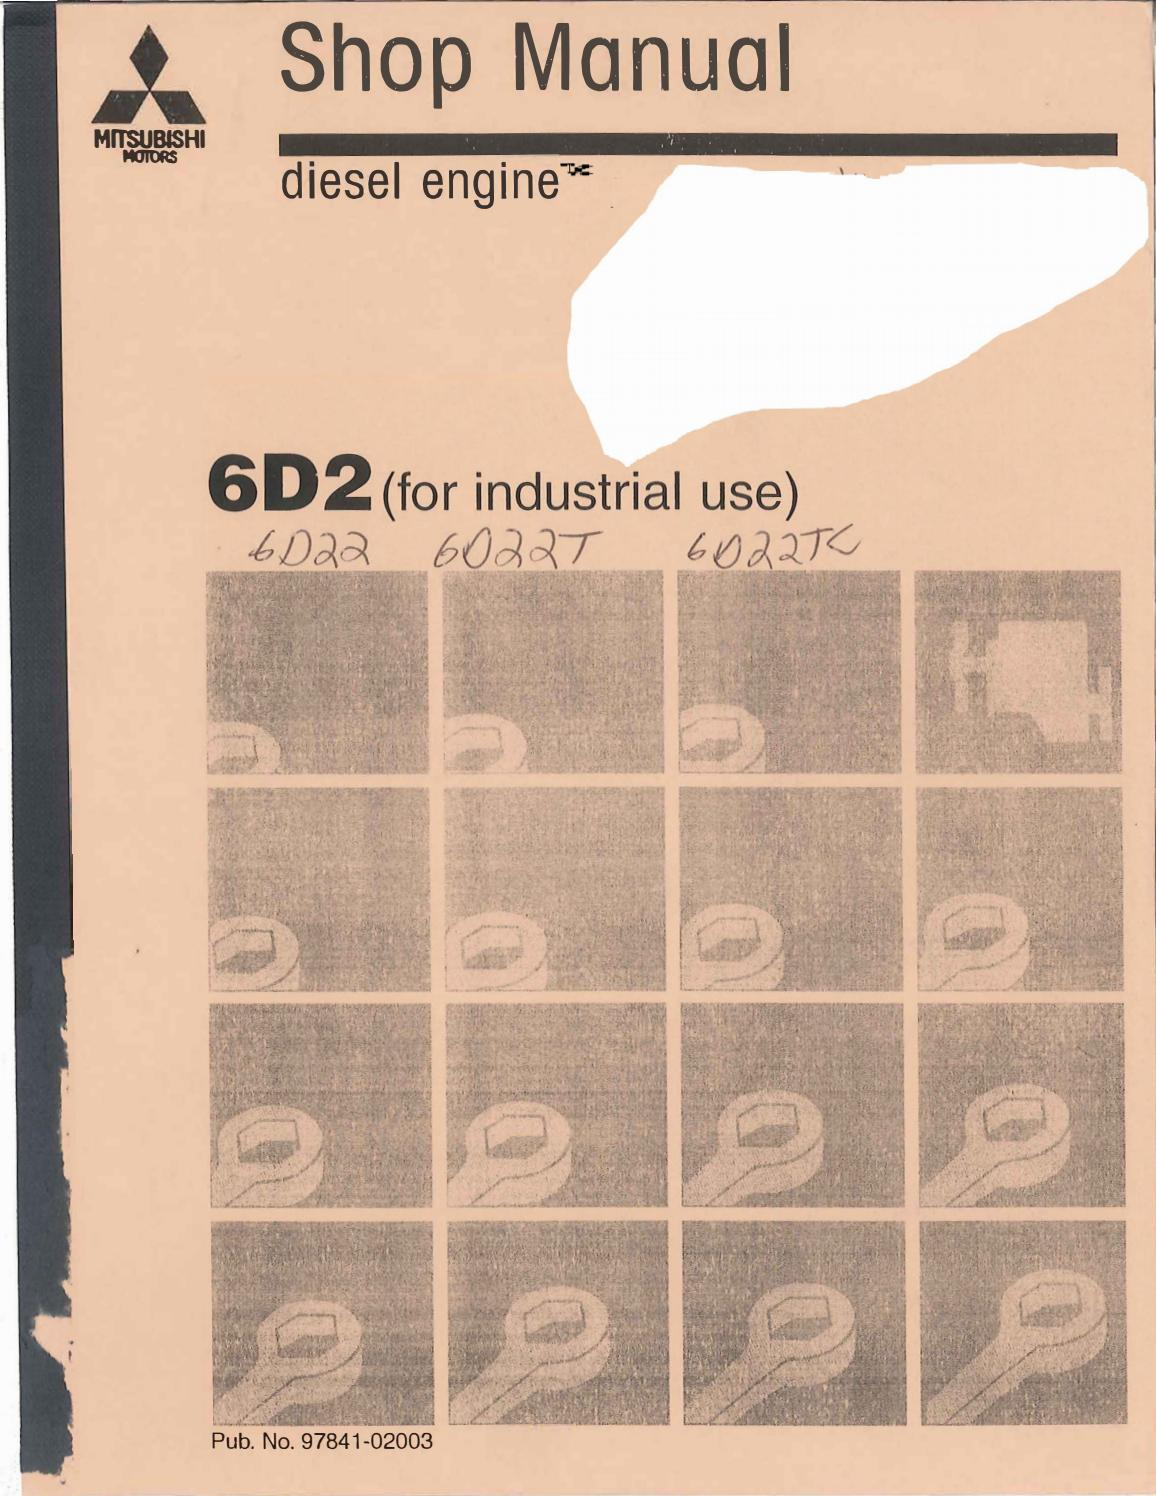 Mitsubishi 6d22 engine Manual